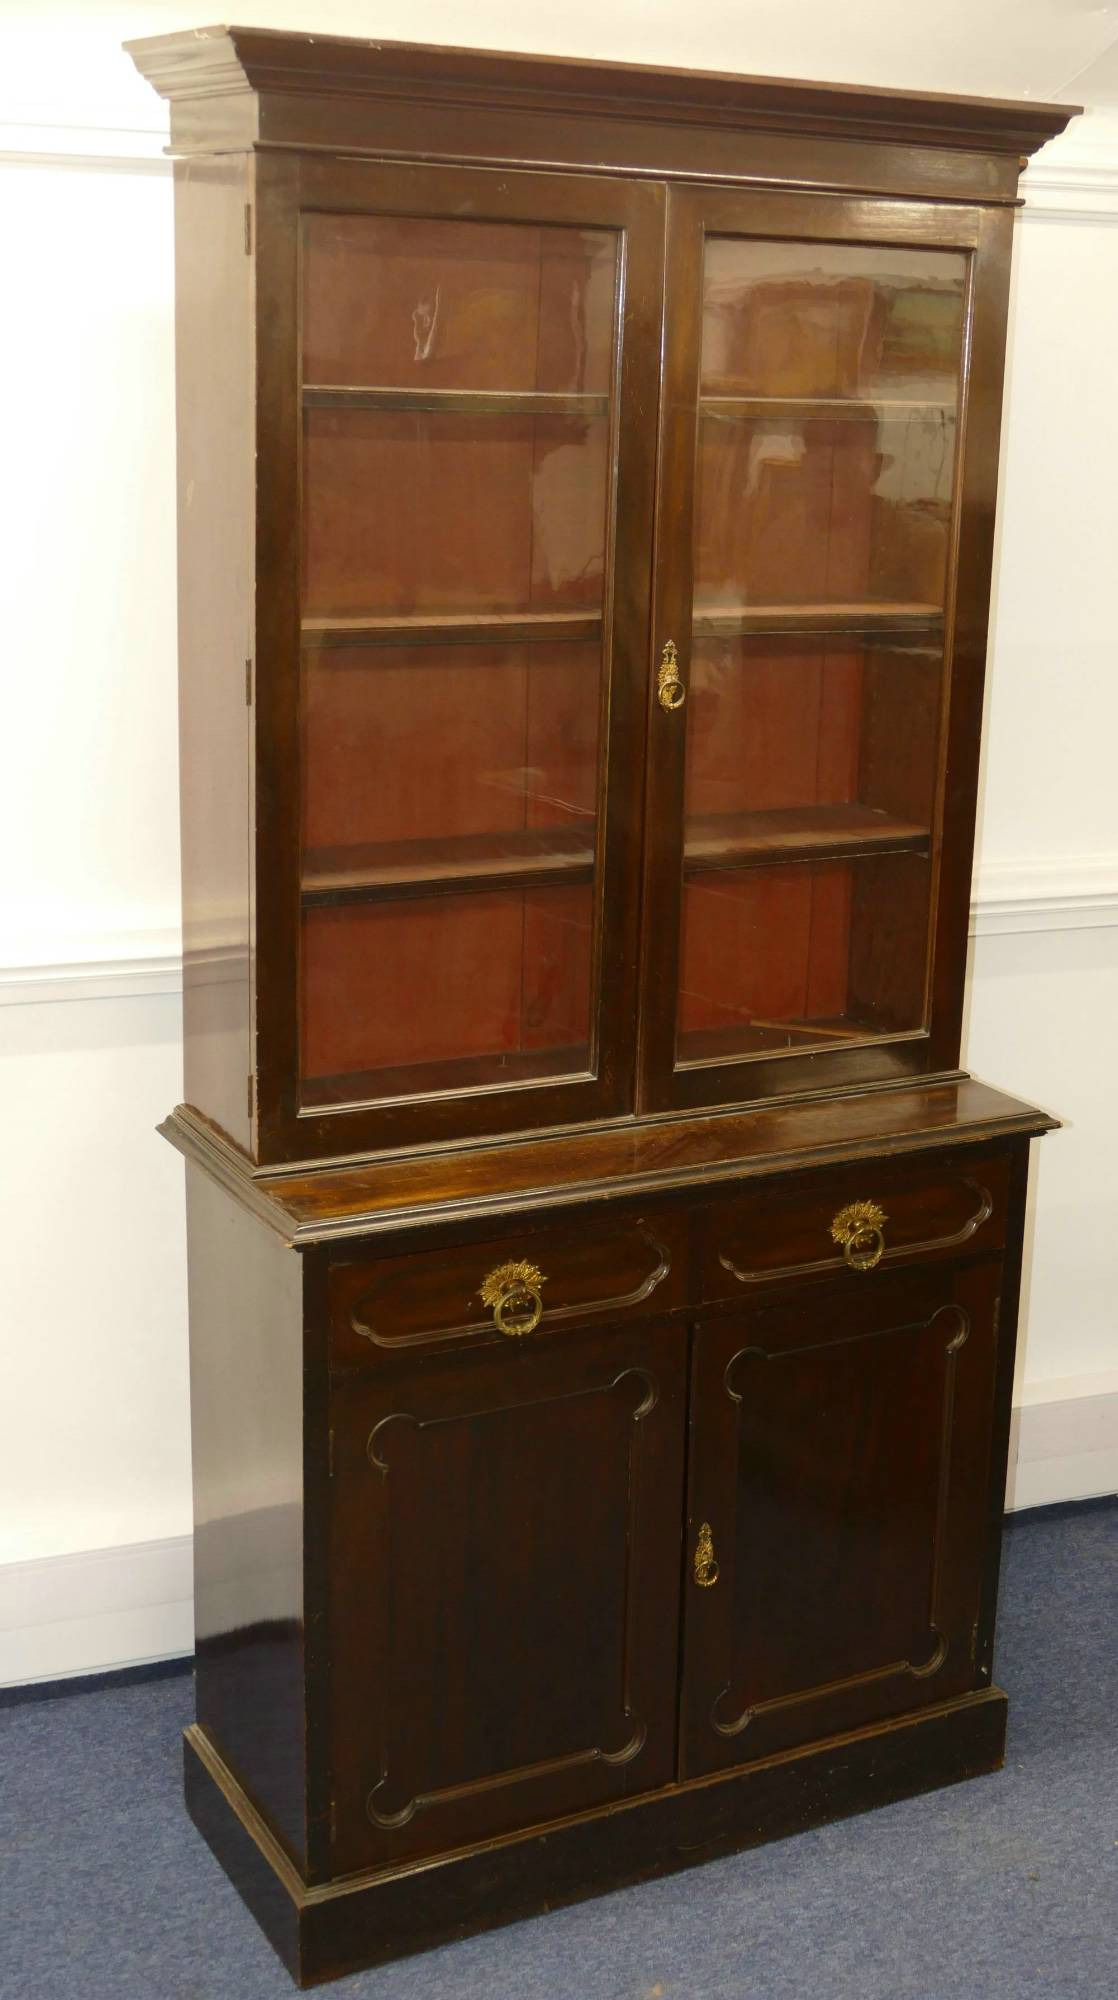 an edwardian mahogany display cabinet having 2 glass panelled doors enclosing adjustable shelves 2 short drawers and 2 further panelled doors below with drop brass ring handles 1m 7cm wide 2m 23cm high